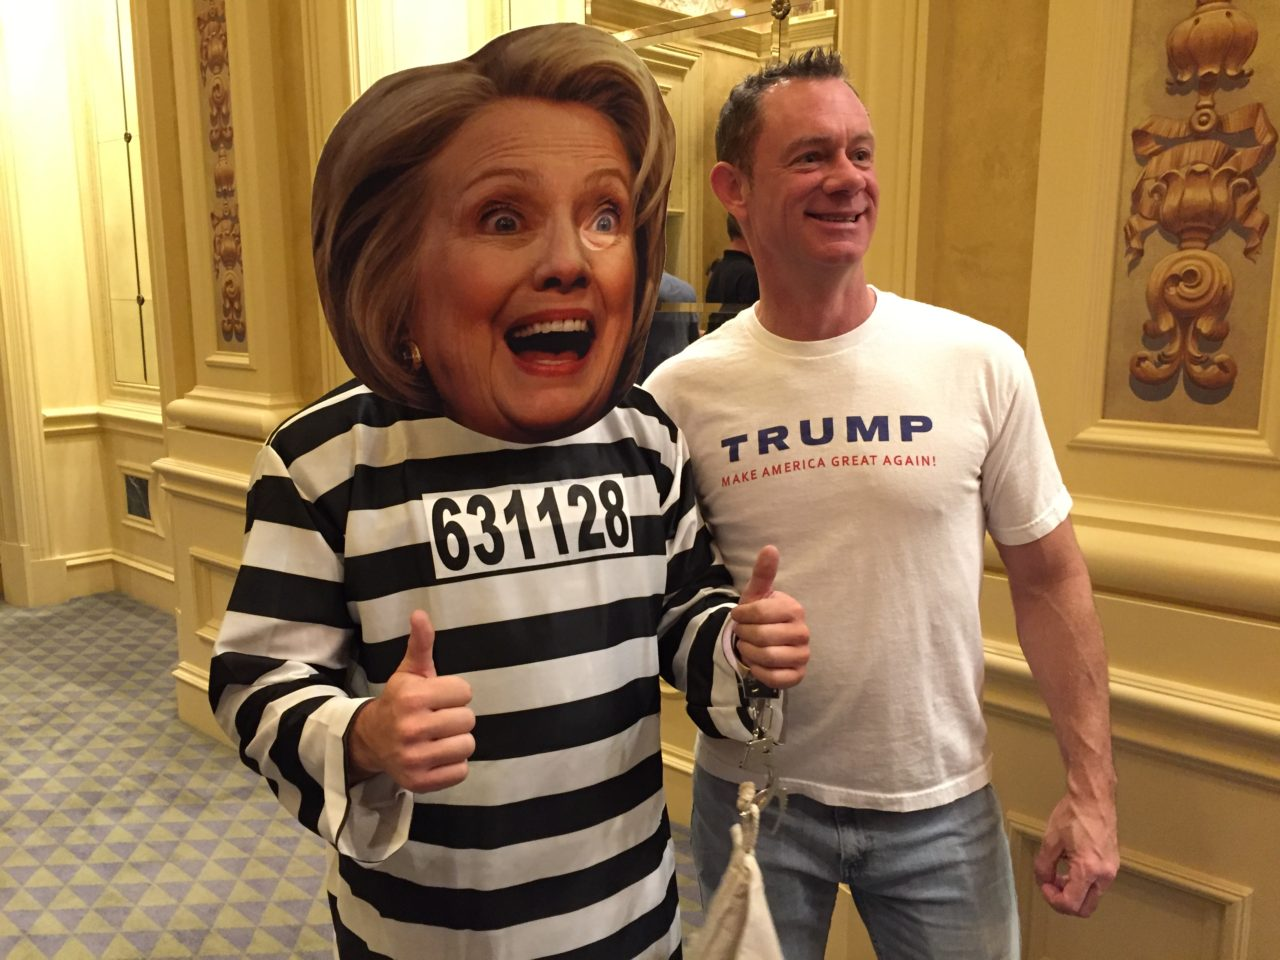 Clinton Convict at Trump Vegas Rally (Joel Pollak / Breitbart News)